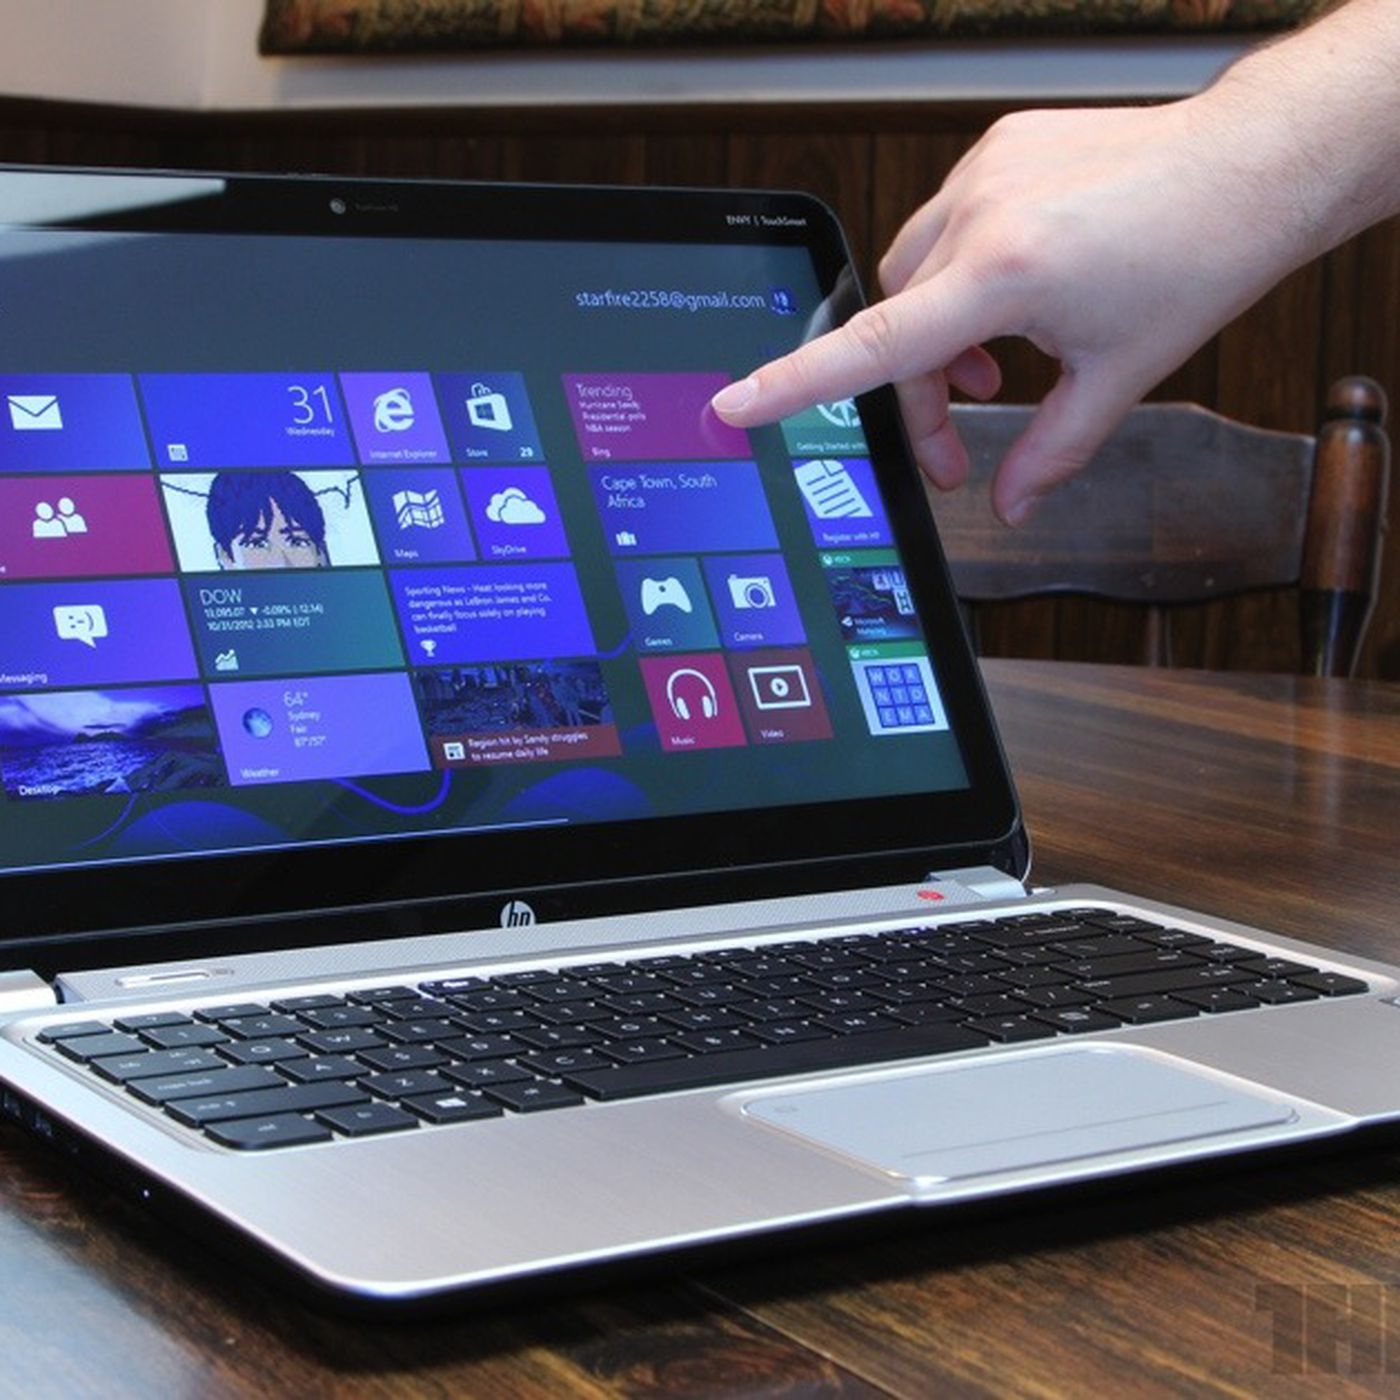 HP Envy TouchSmart Ultrabook 4 review - The Verge